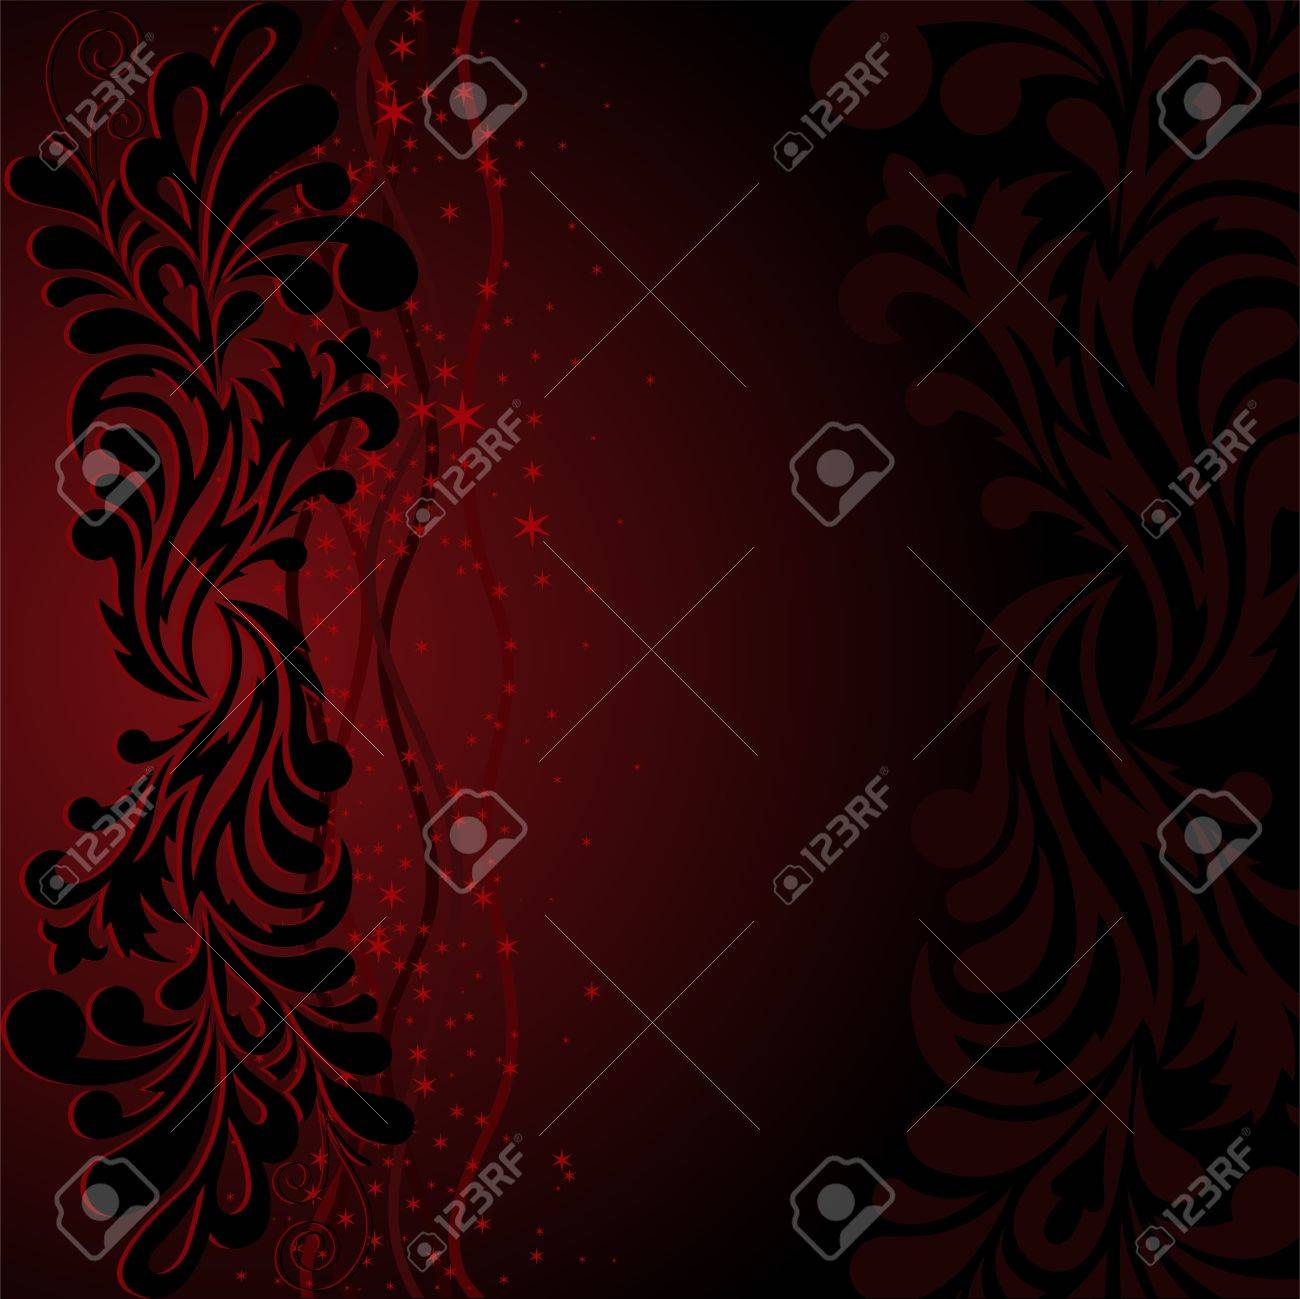 beautiful black ornament with stars and waves on a dark red background Stock Vector - 9875185